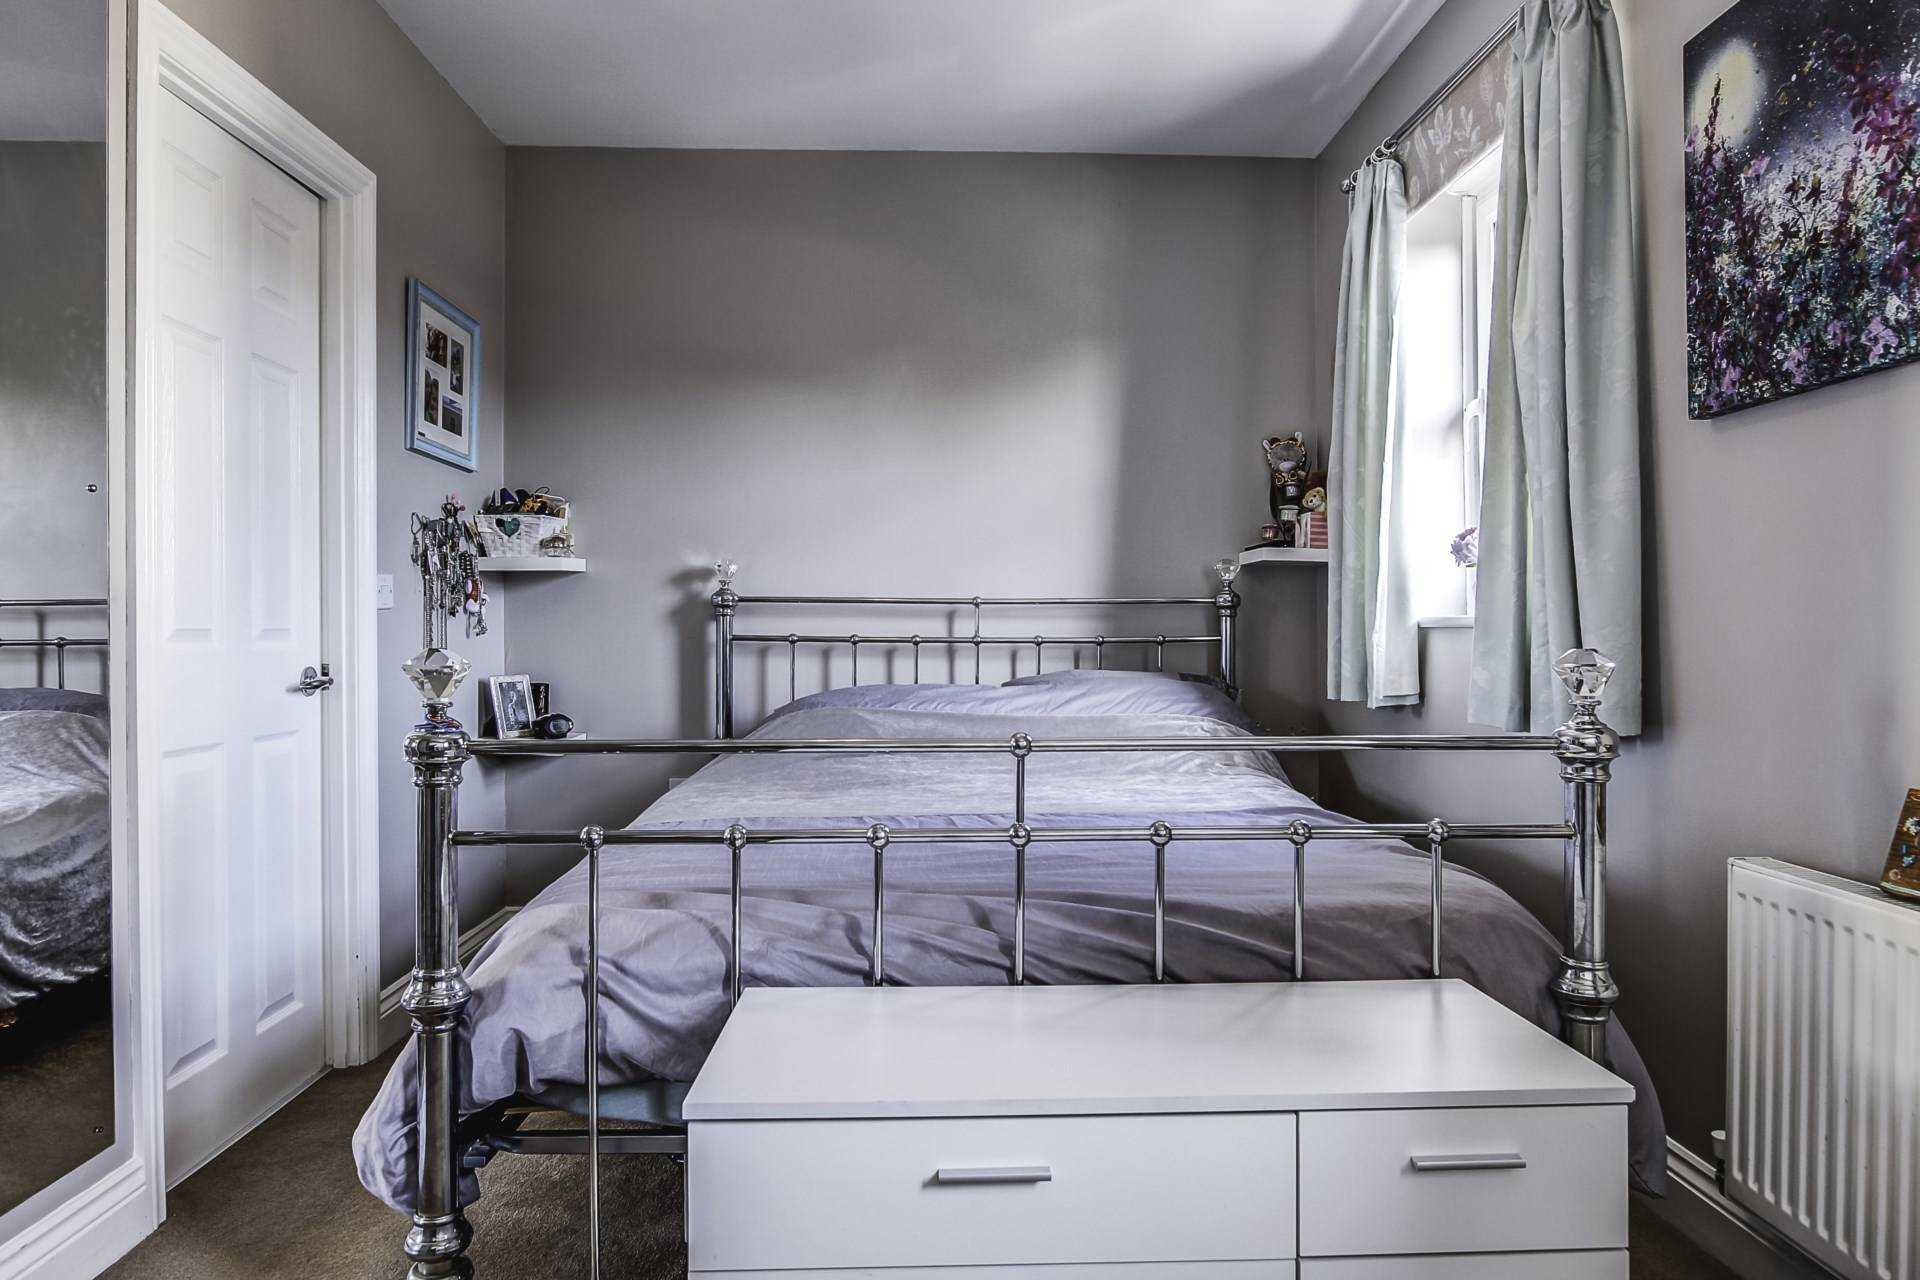 3 bed terraced house for sale in Cobham Road, Blandford Forum, Blandford Forum  - Property Image 7